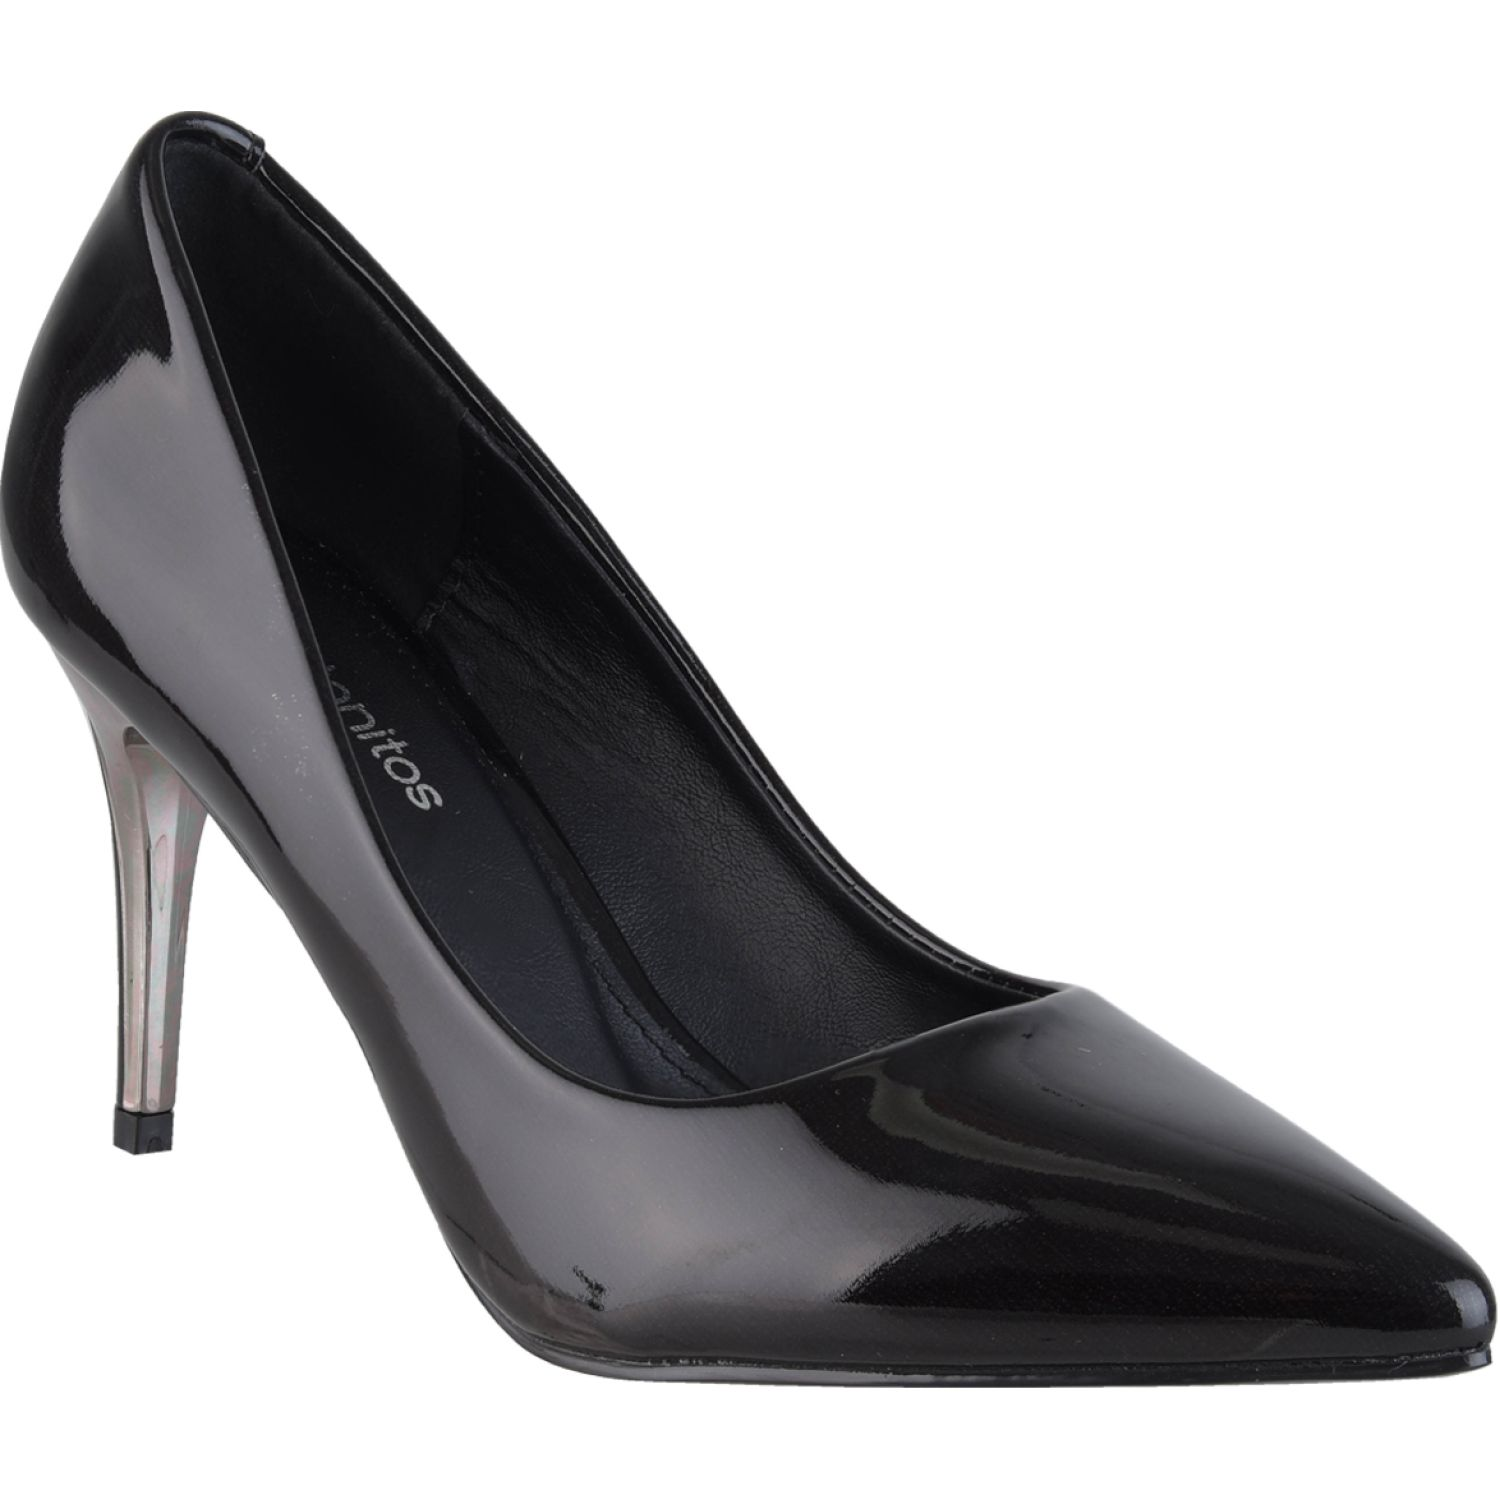 Platanitos cv 6886 Negro Estiletos y Pumps